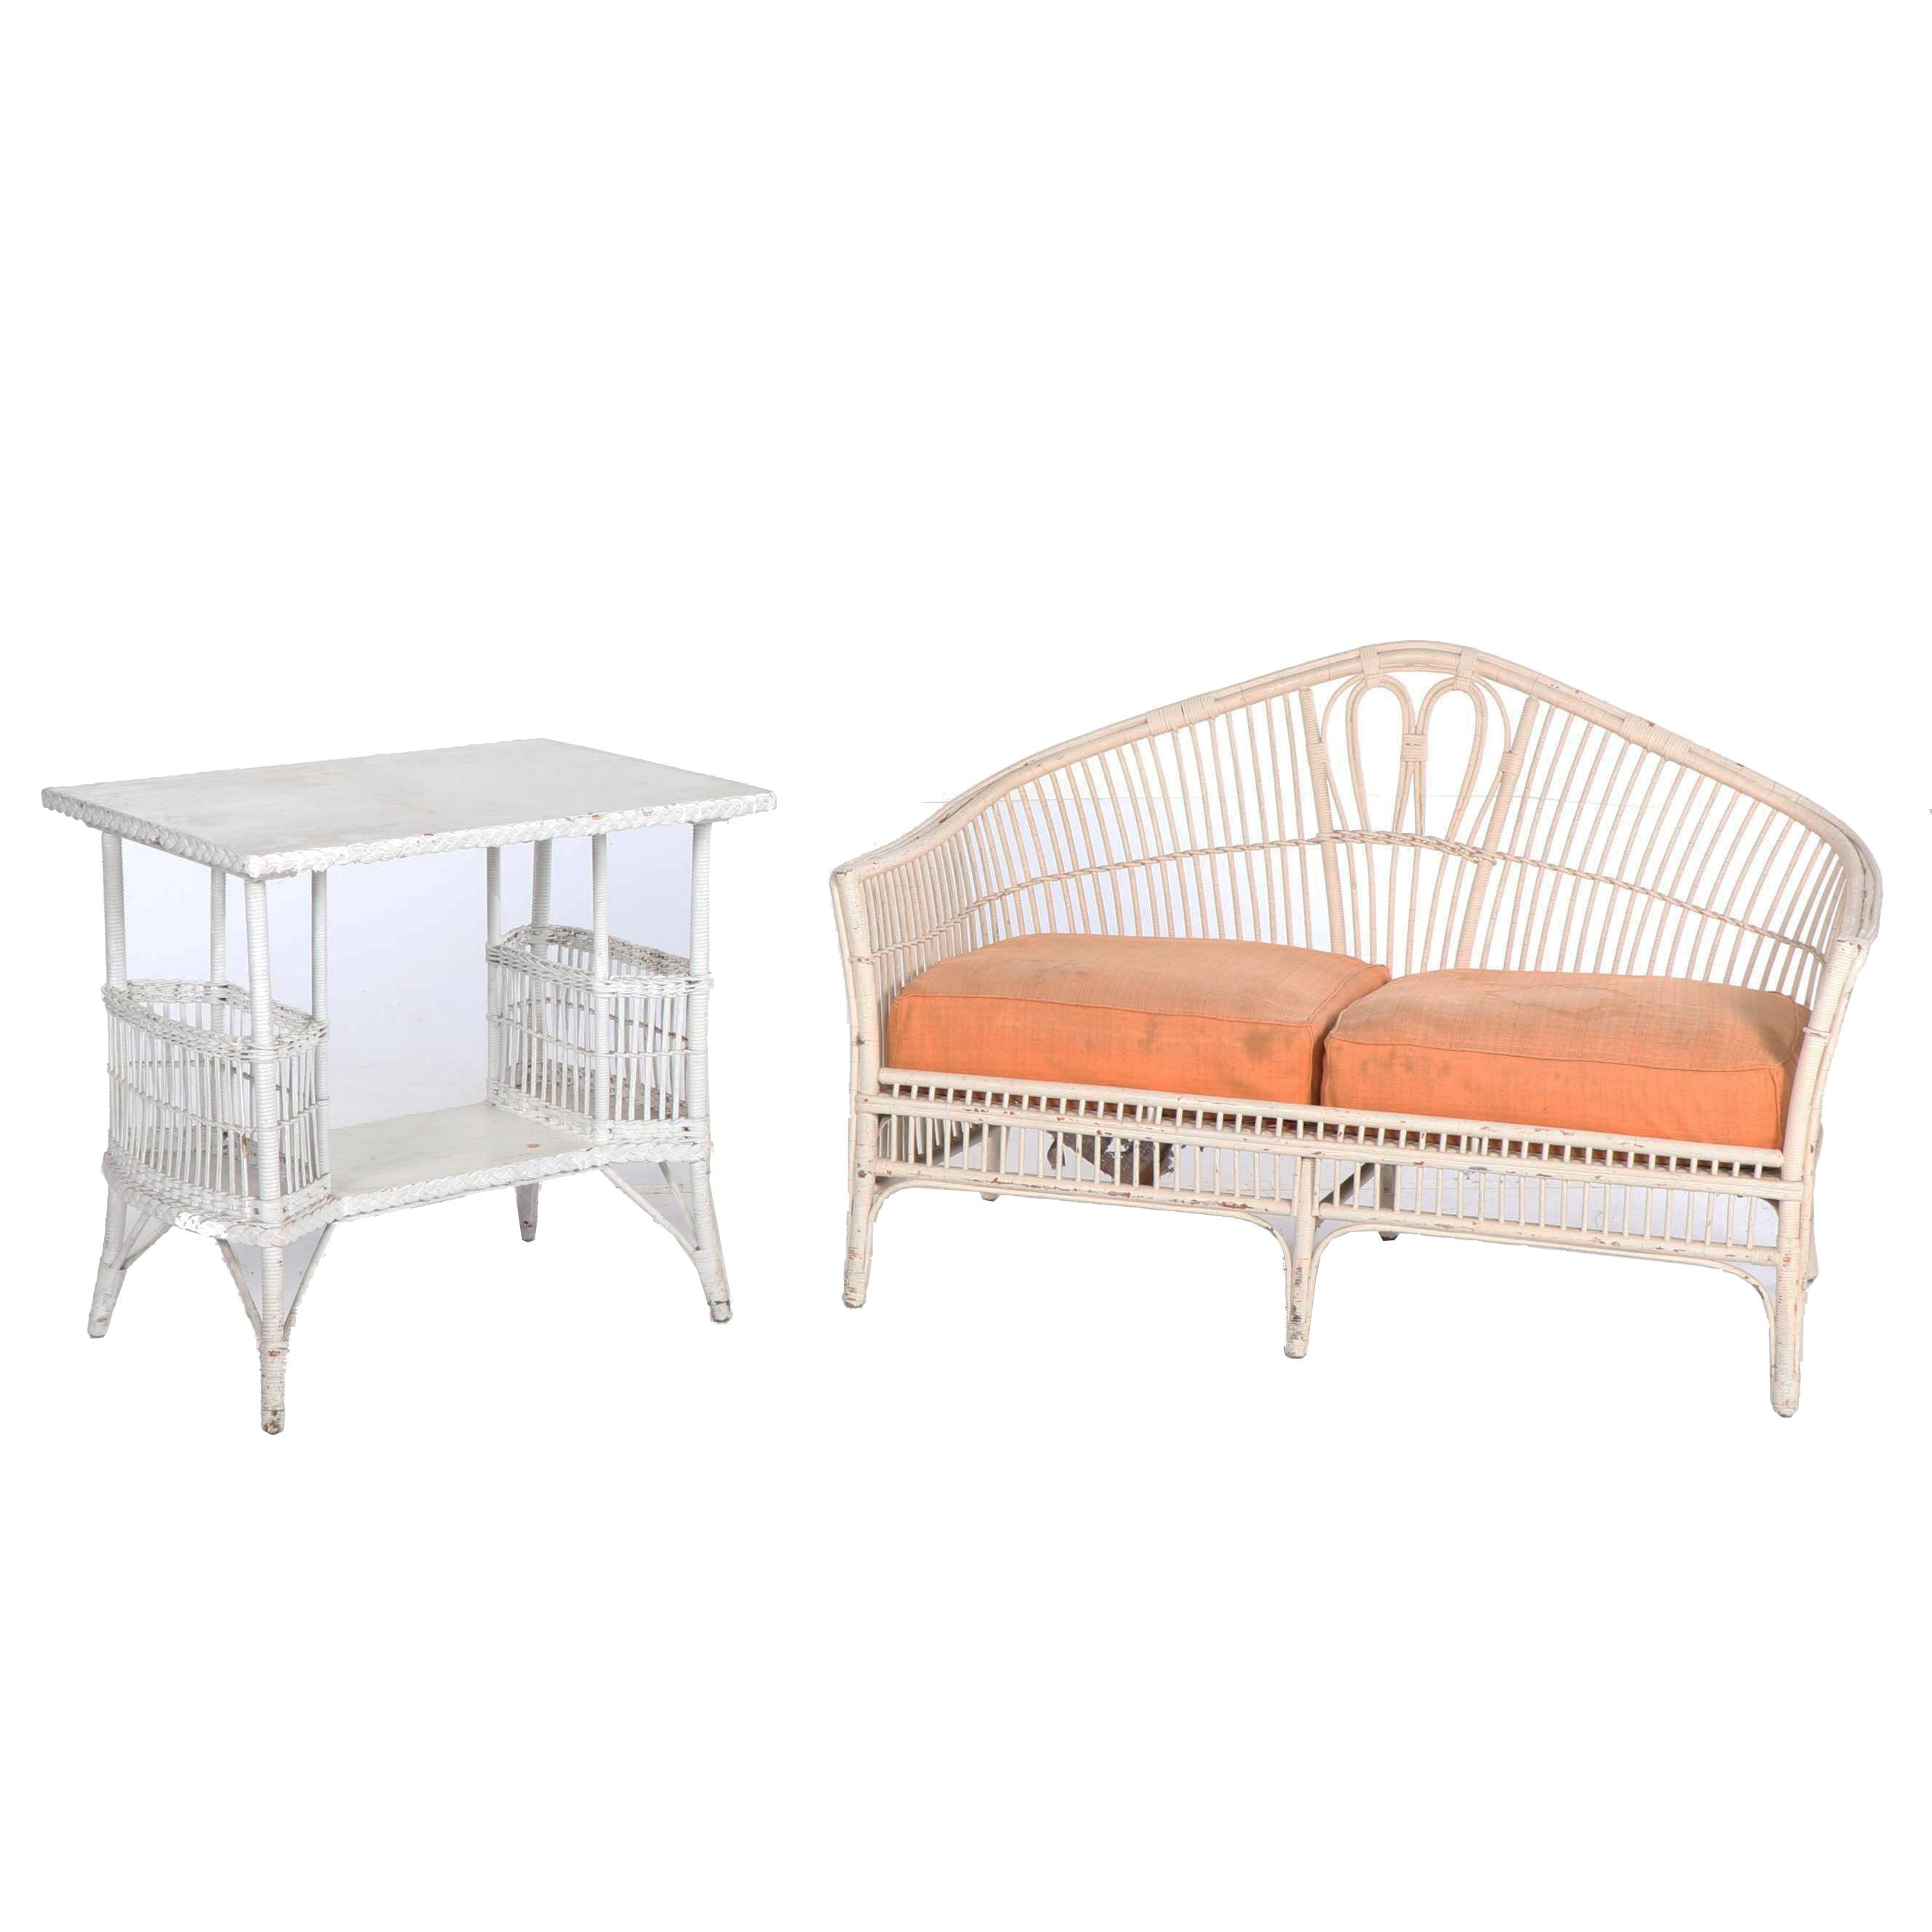 Painted Rattan Patio Sofa and Side Table, Mid-20th Century